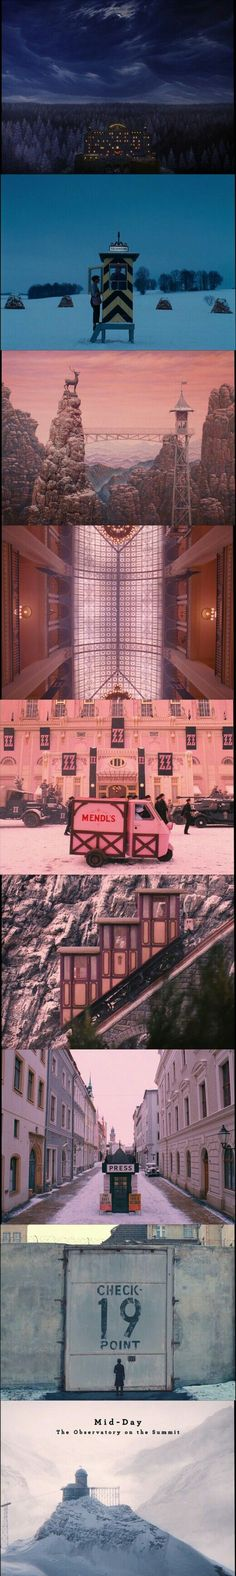 The Grand Budapest Hotel(2014) Wes Anderson's film.